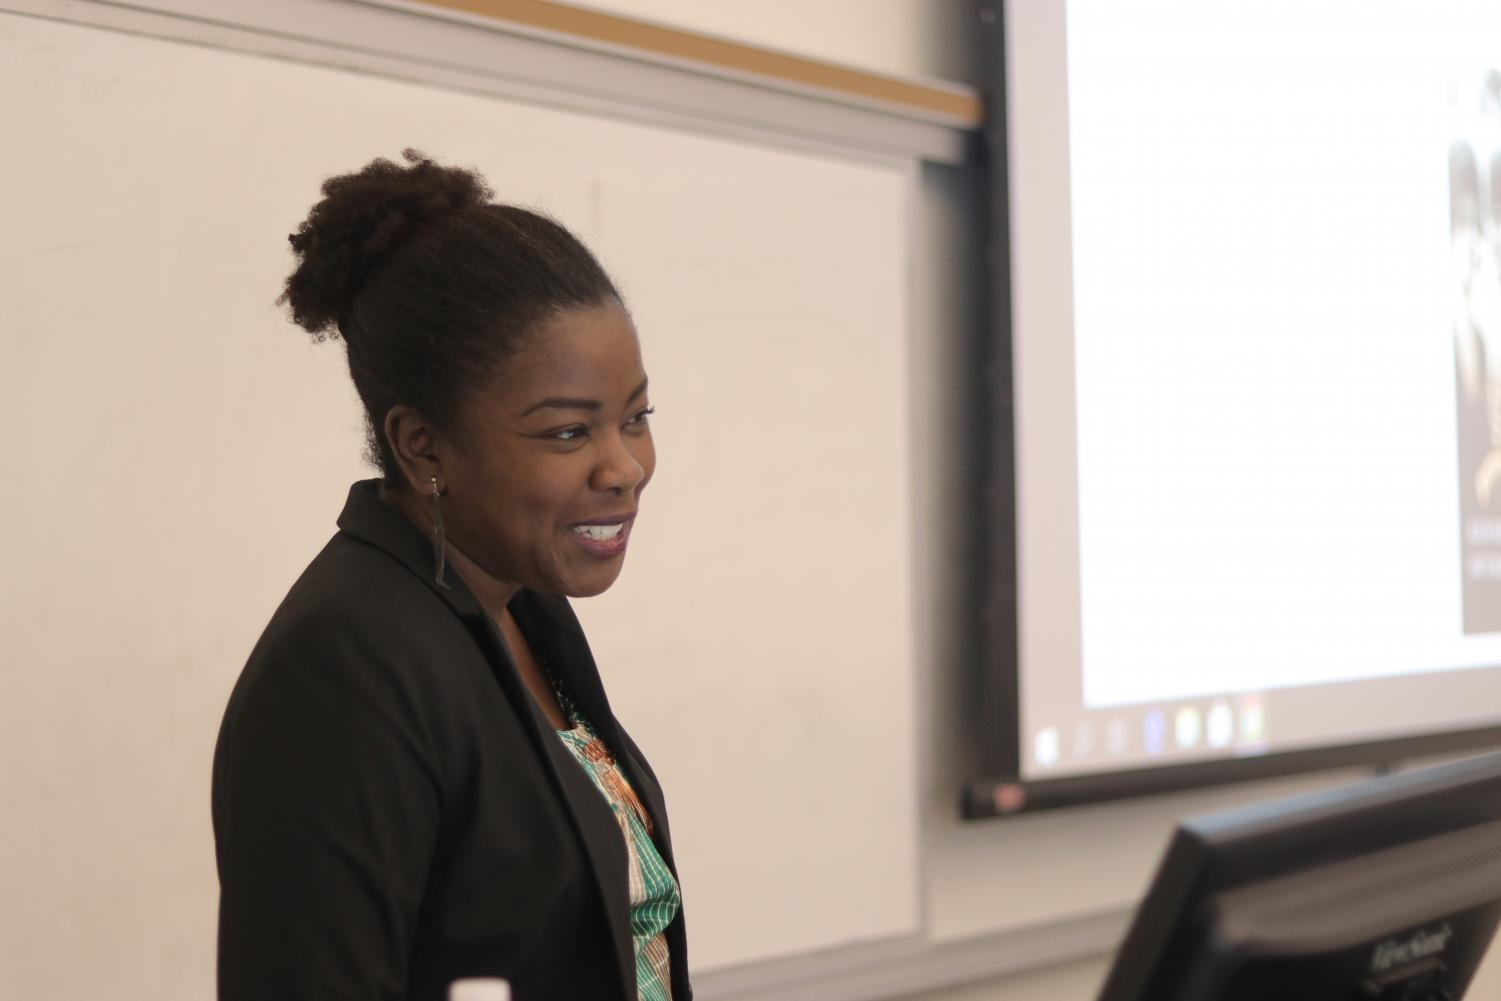 Dr. Robyn C. Spencer spoke on the long, thought provoking process writing her book.